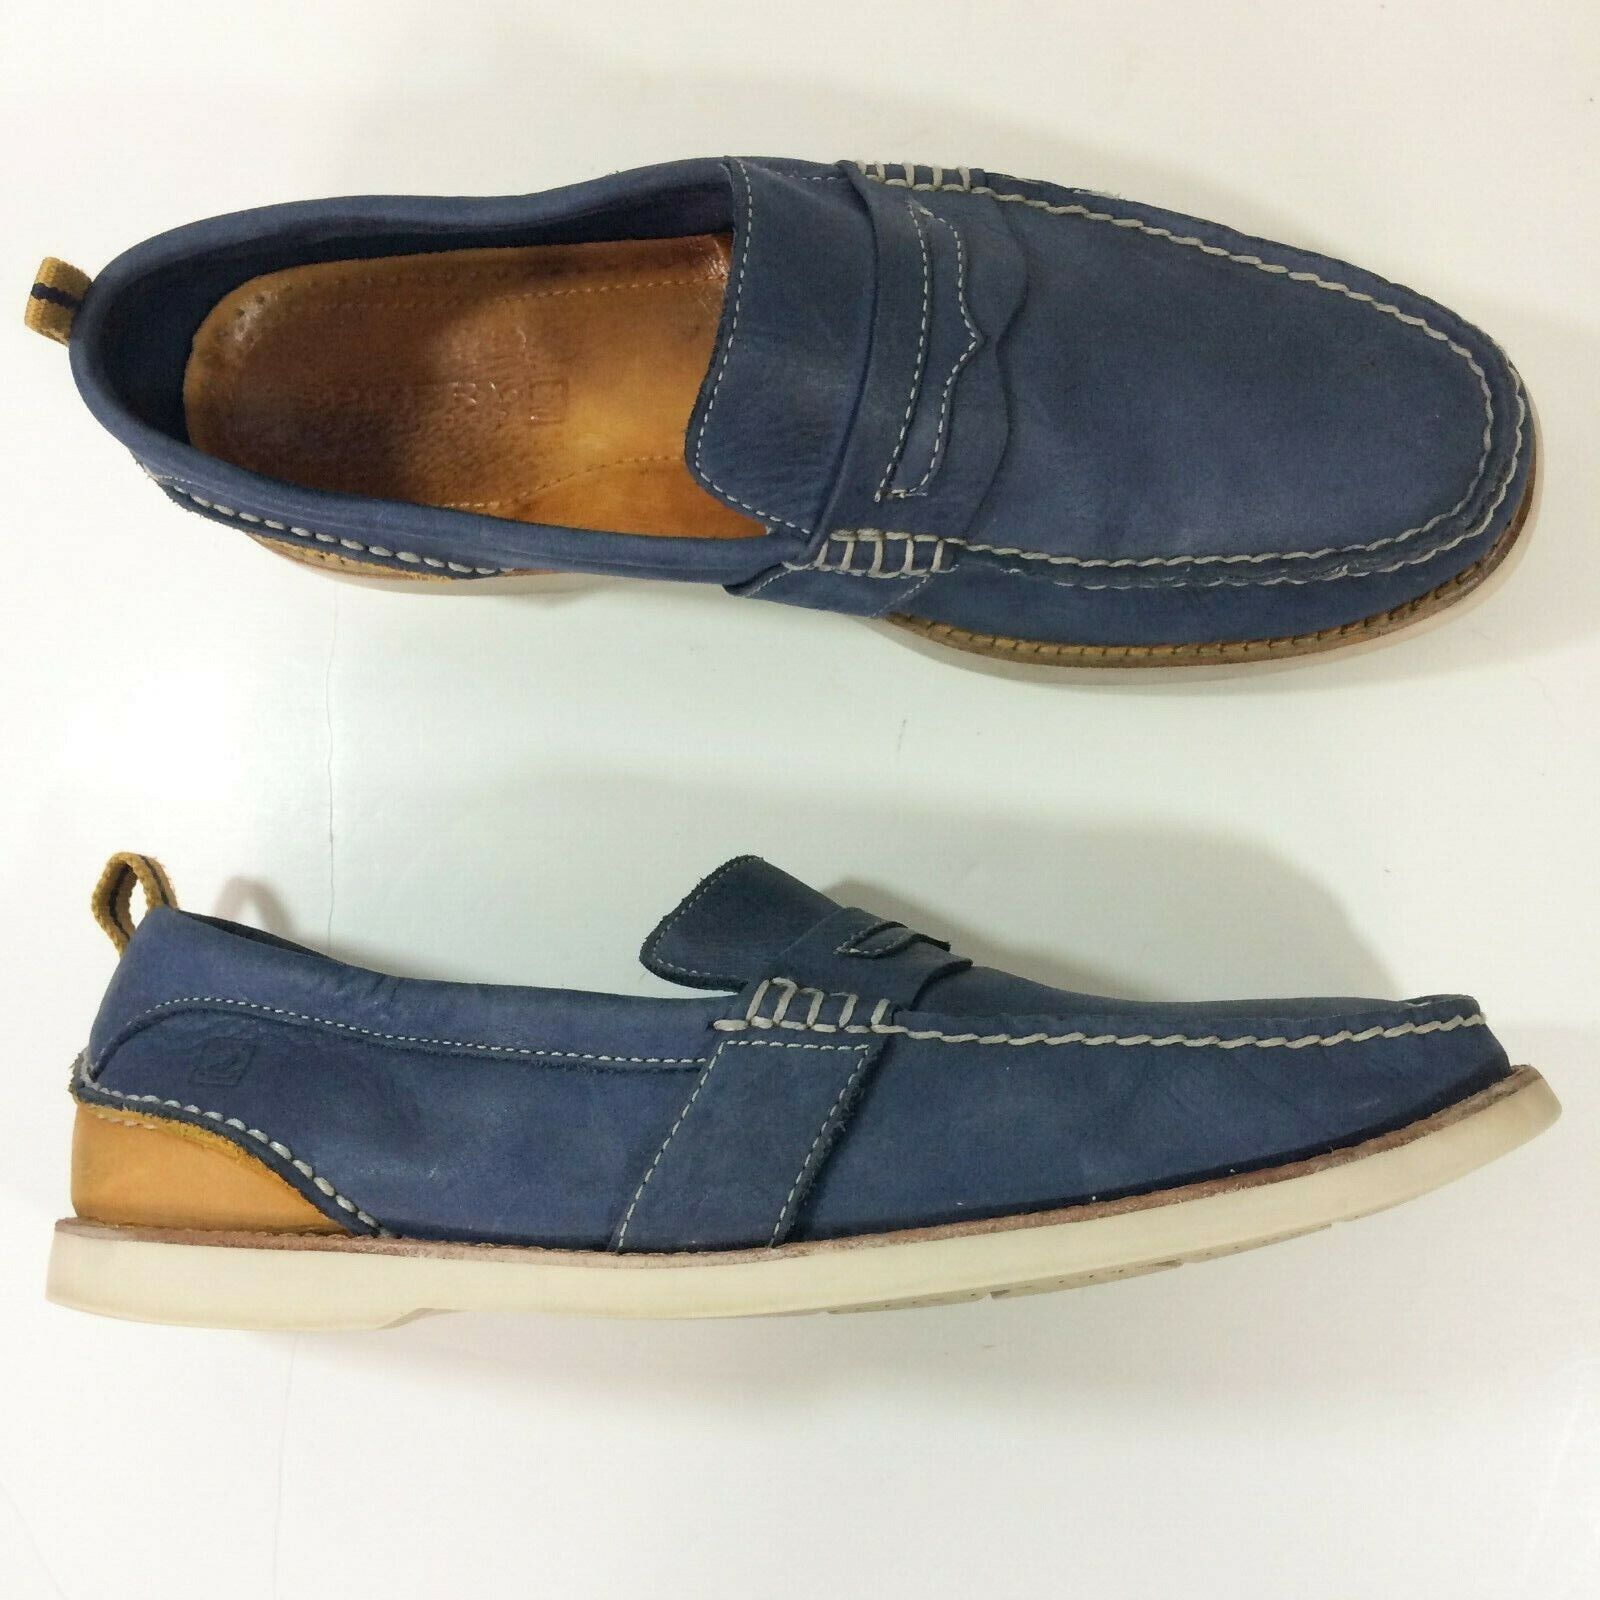 Sperry Top Sider men's loafers 11M bluee